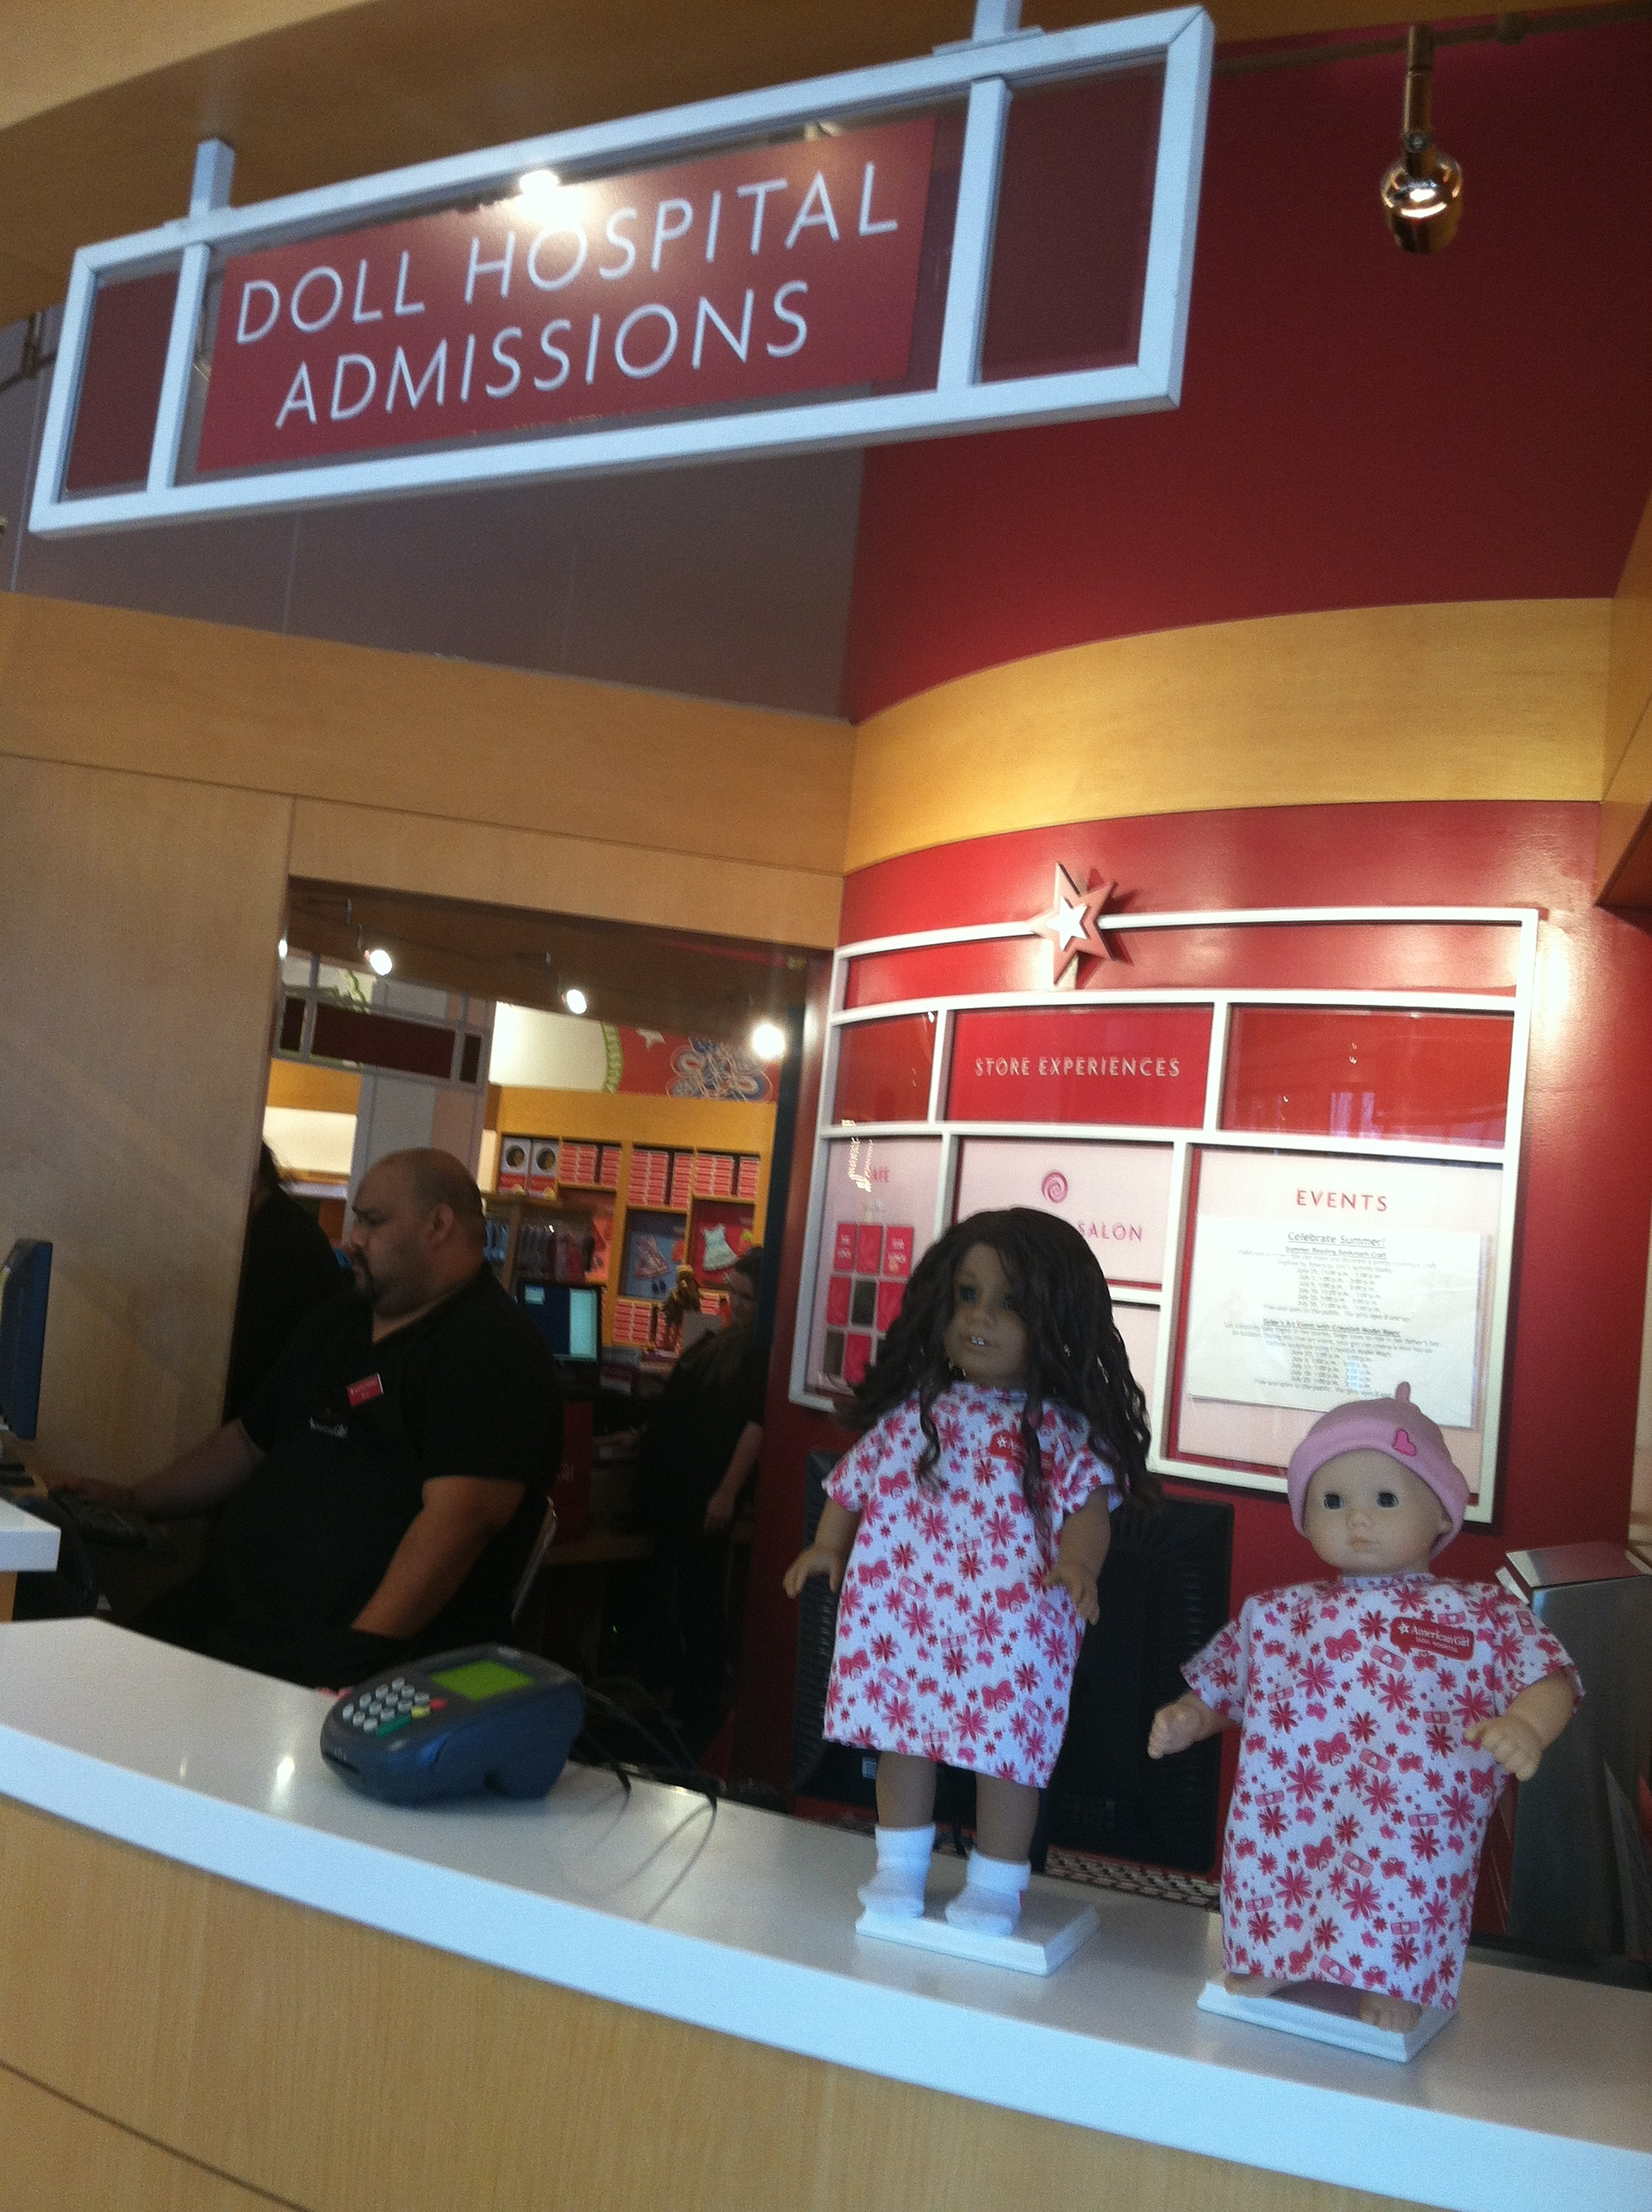 All American Girl Doll Two Chums